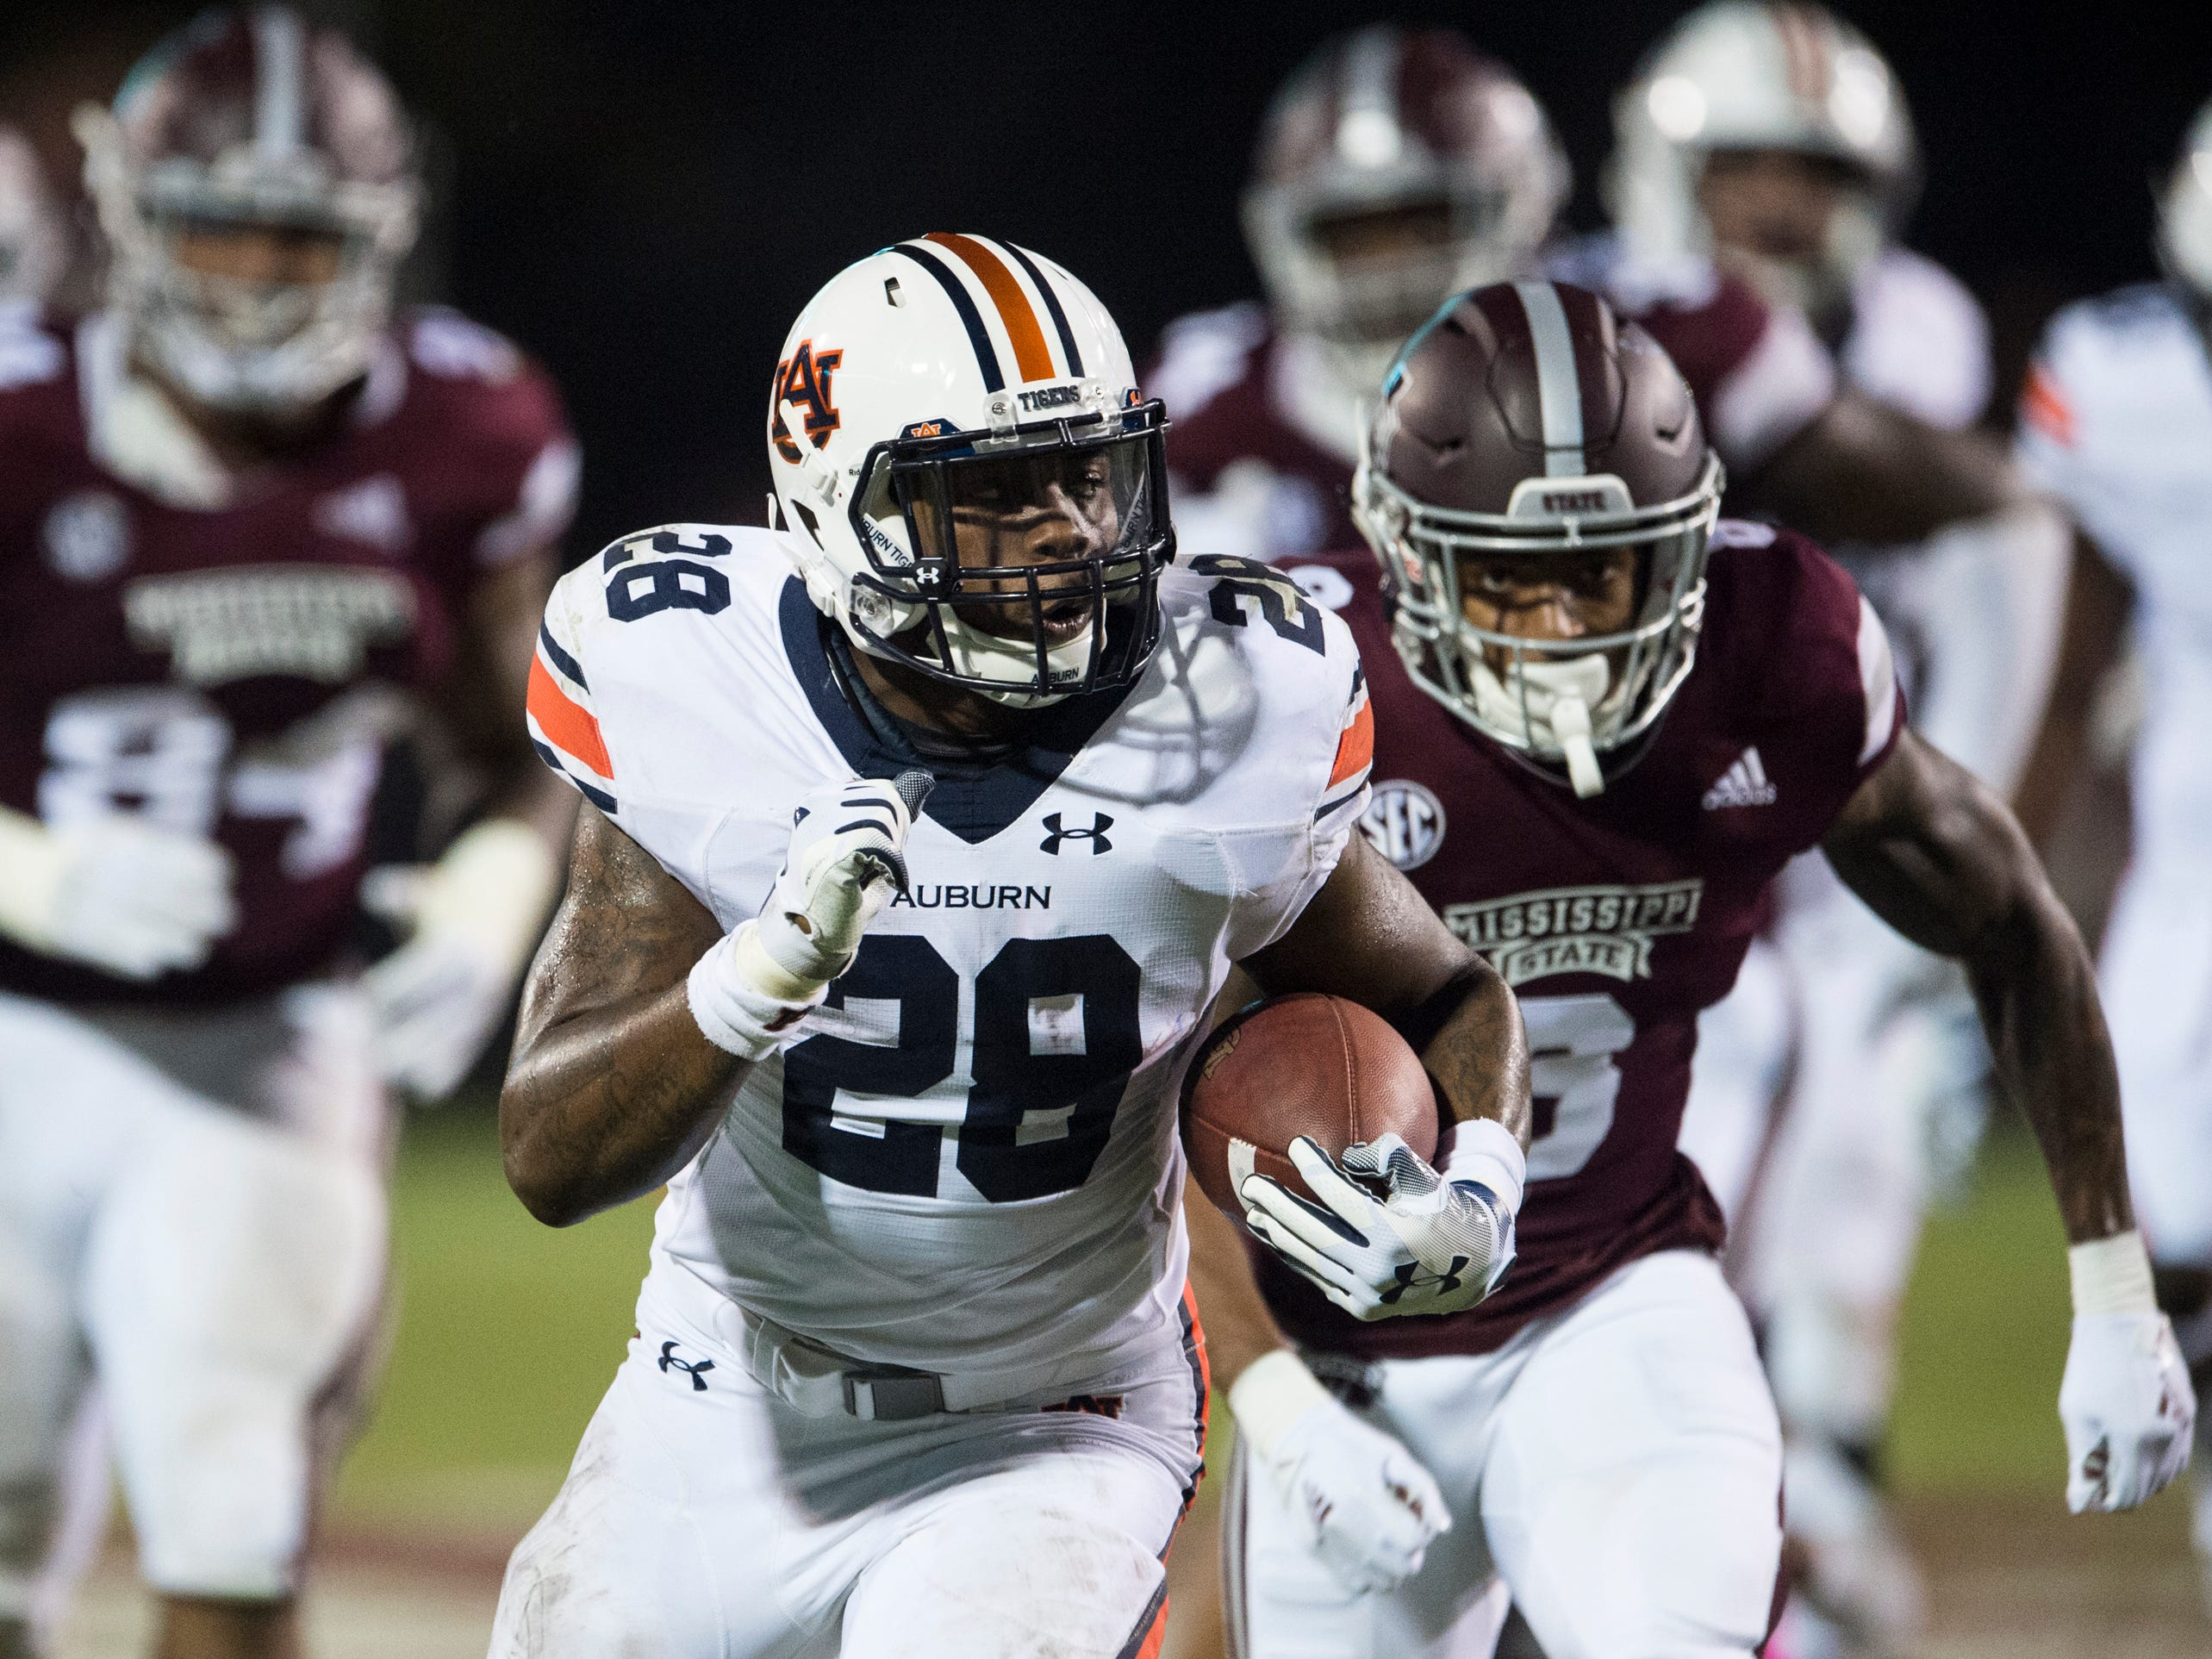 Auburn's JaTarvious Whitlow (28) breaks a run eventually fumbling the ball as he dives into the end zone at Davis Wade Stadium in Starkville, Miss., on Saturday, Oct. 6, 2018. Mississippi State defeated Auburn 23-9.